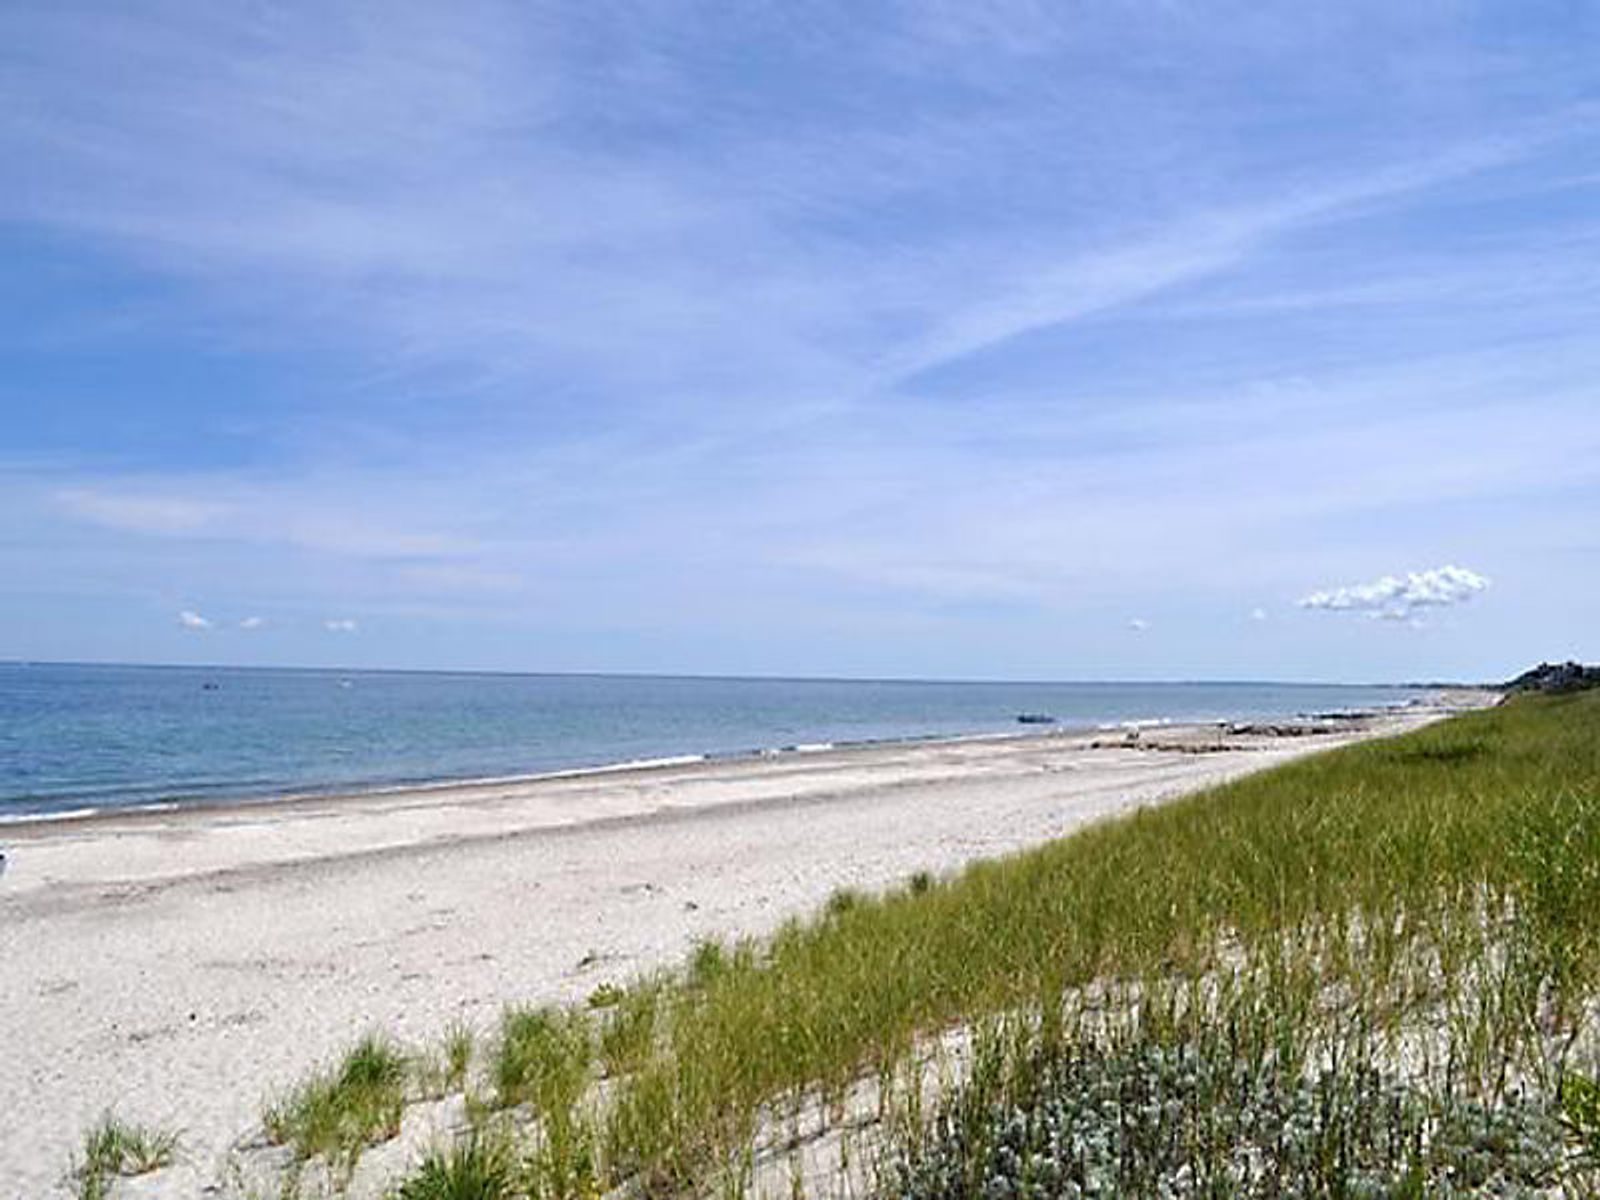 Lot with Private Association Ocean Beach, East Sandwich MA Acreage / Lots - Cape Cod Real Estate